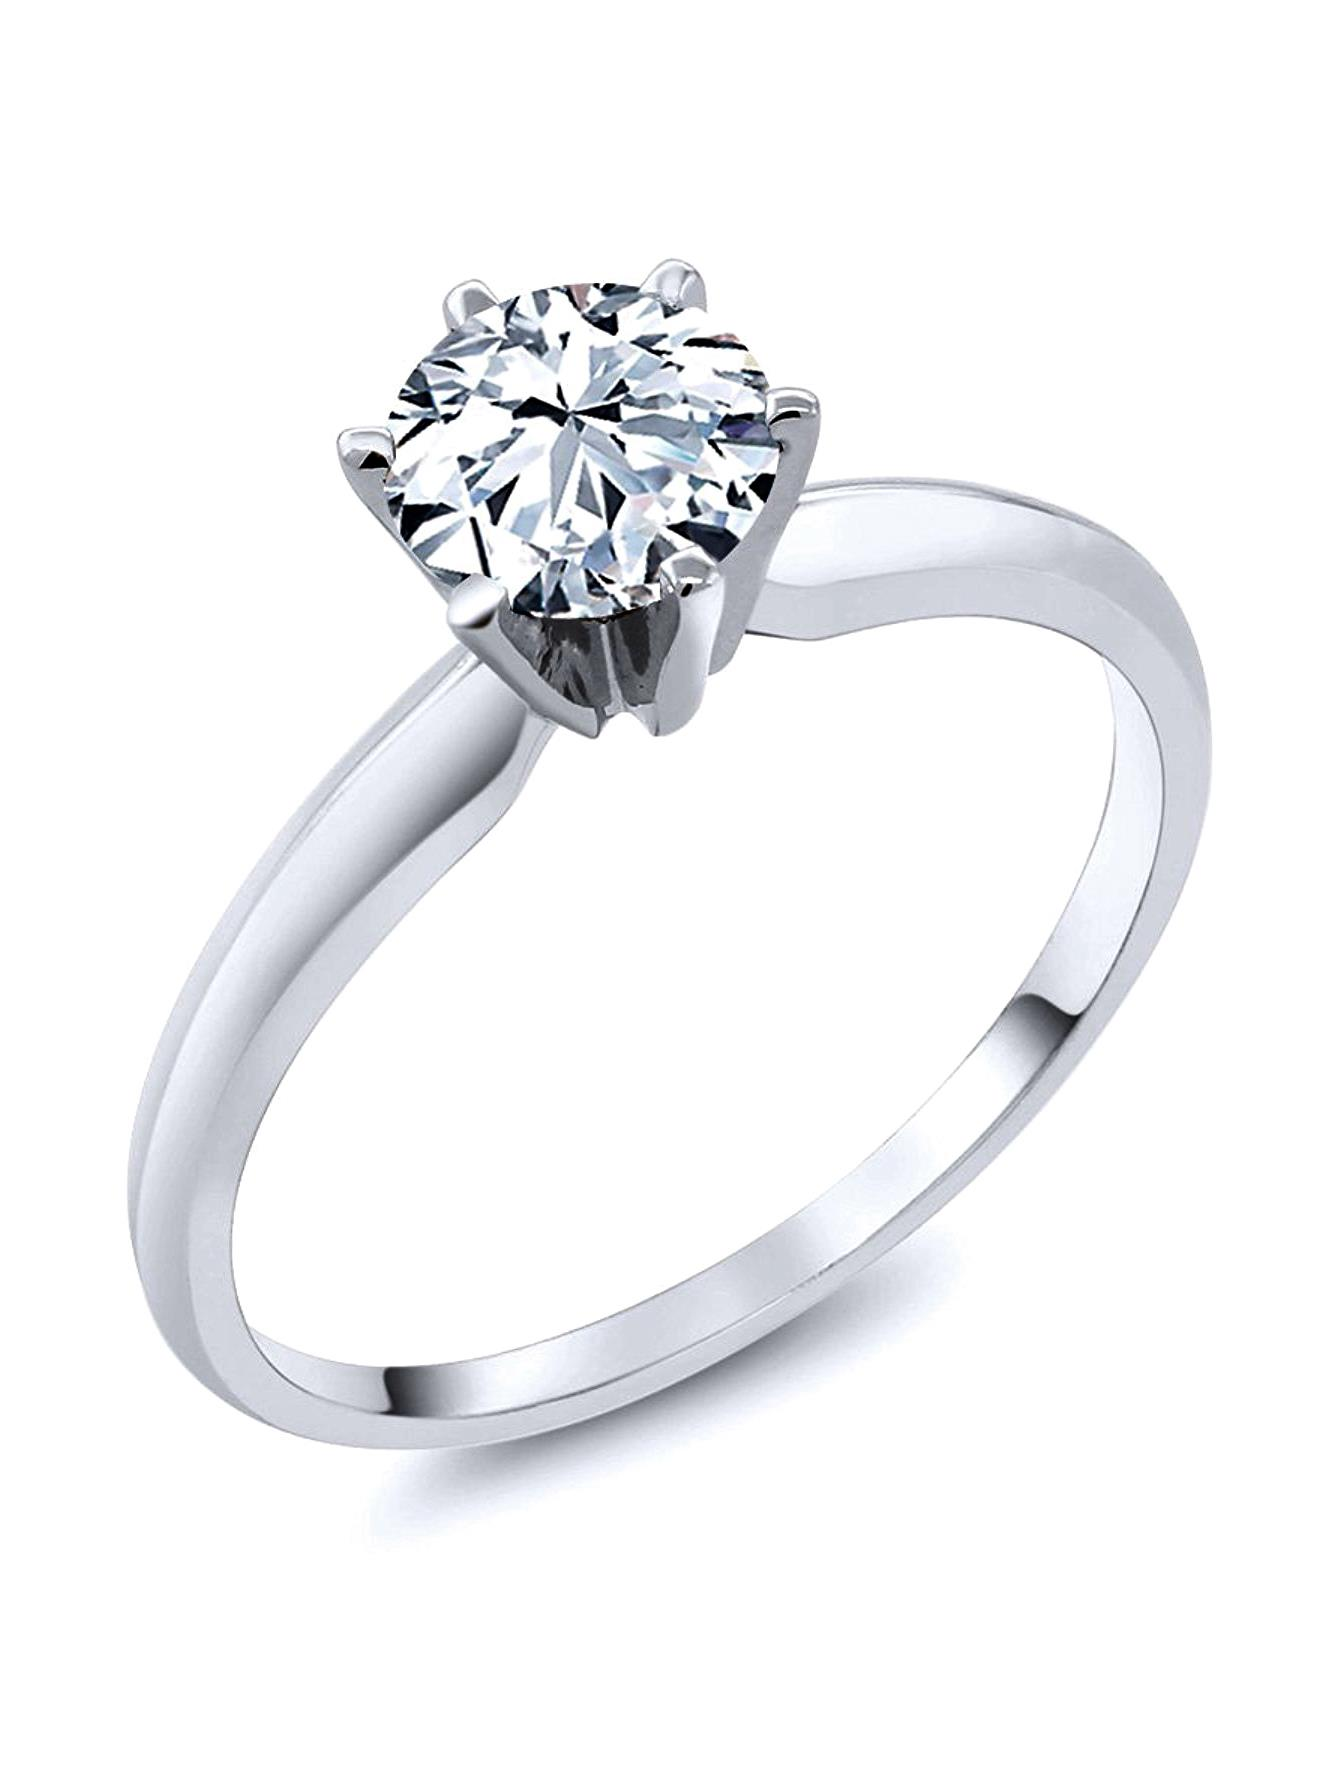 Sterling Silver Cubic Zirconia Solitaire 1.25 Carat tw Round Cut 6-Prong Set CZ Engagement Ring, Nickel Free Sz 7